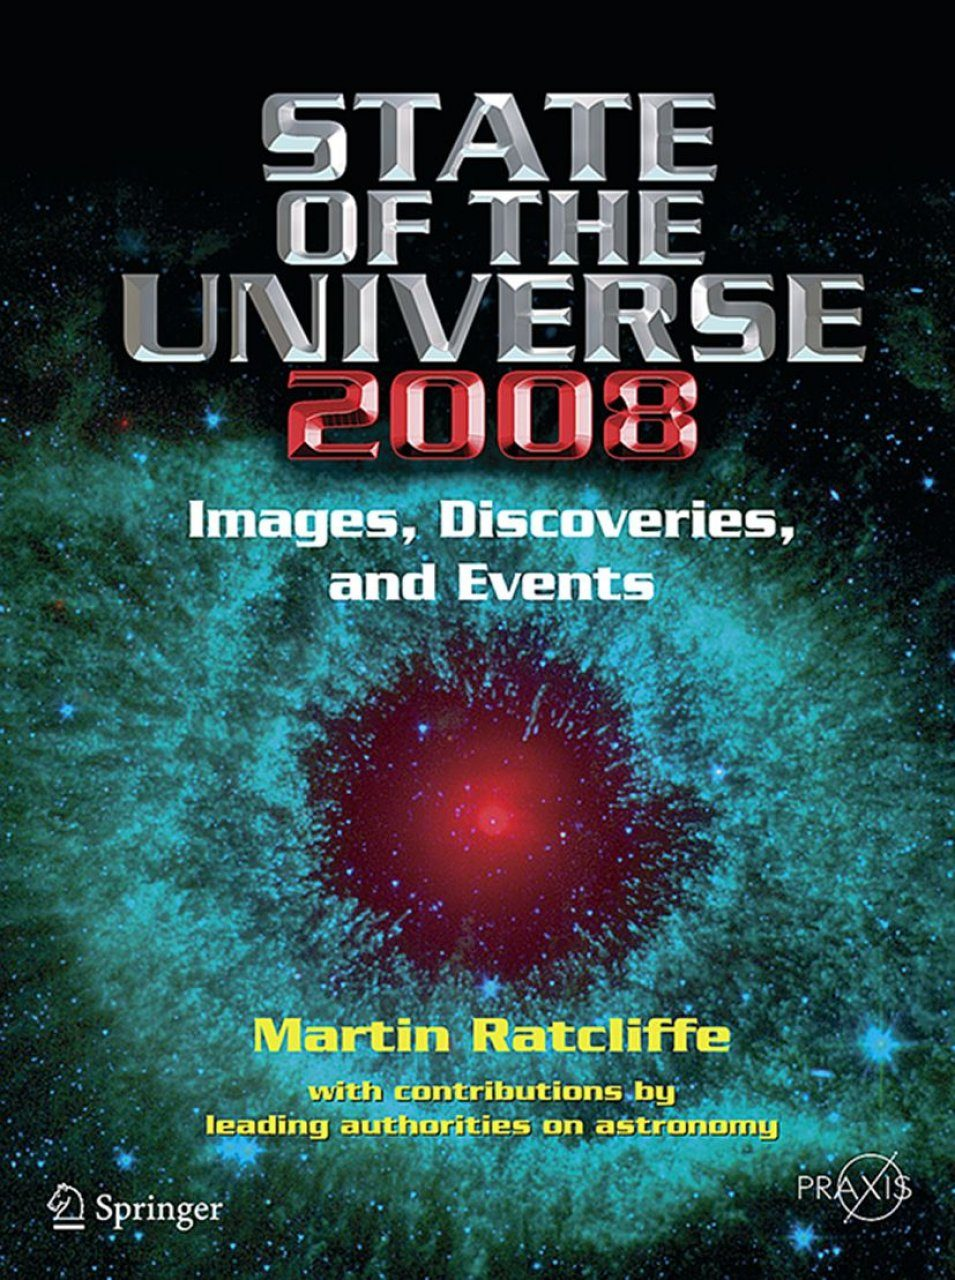 State of the Universe 2008